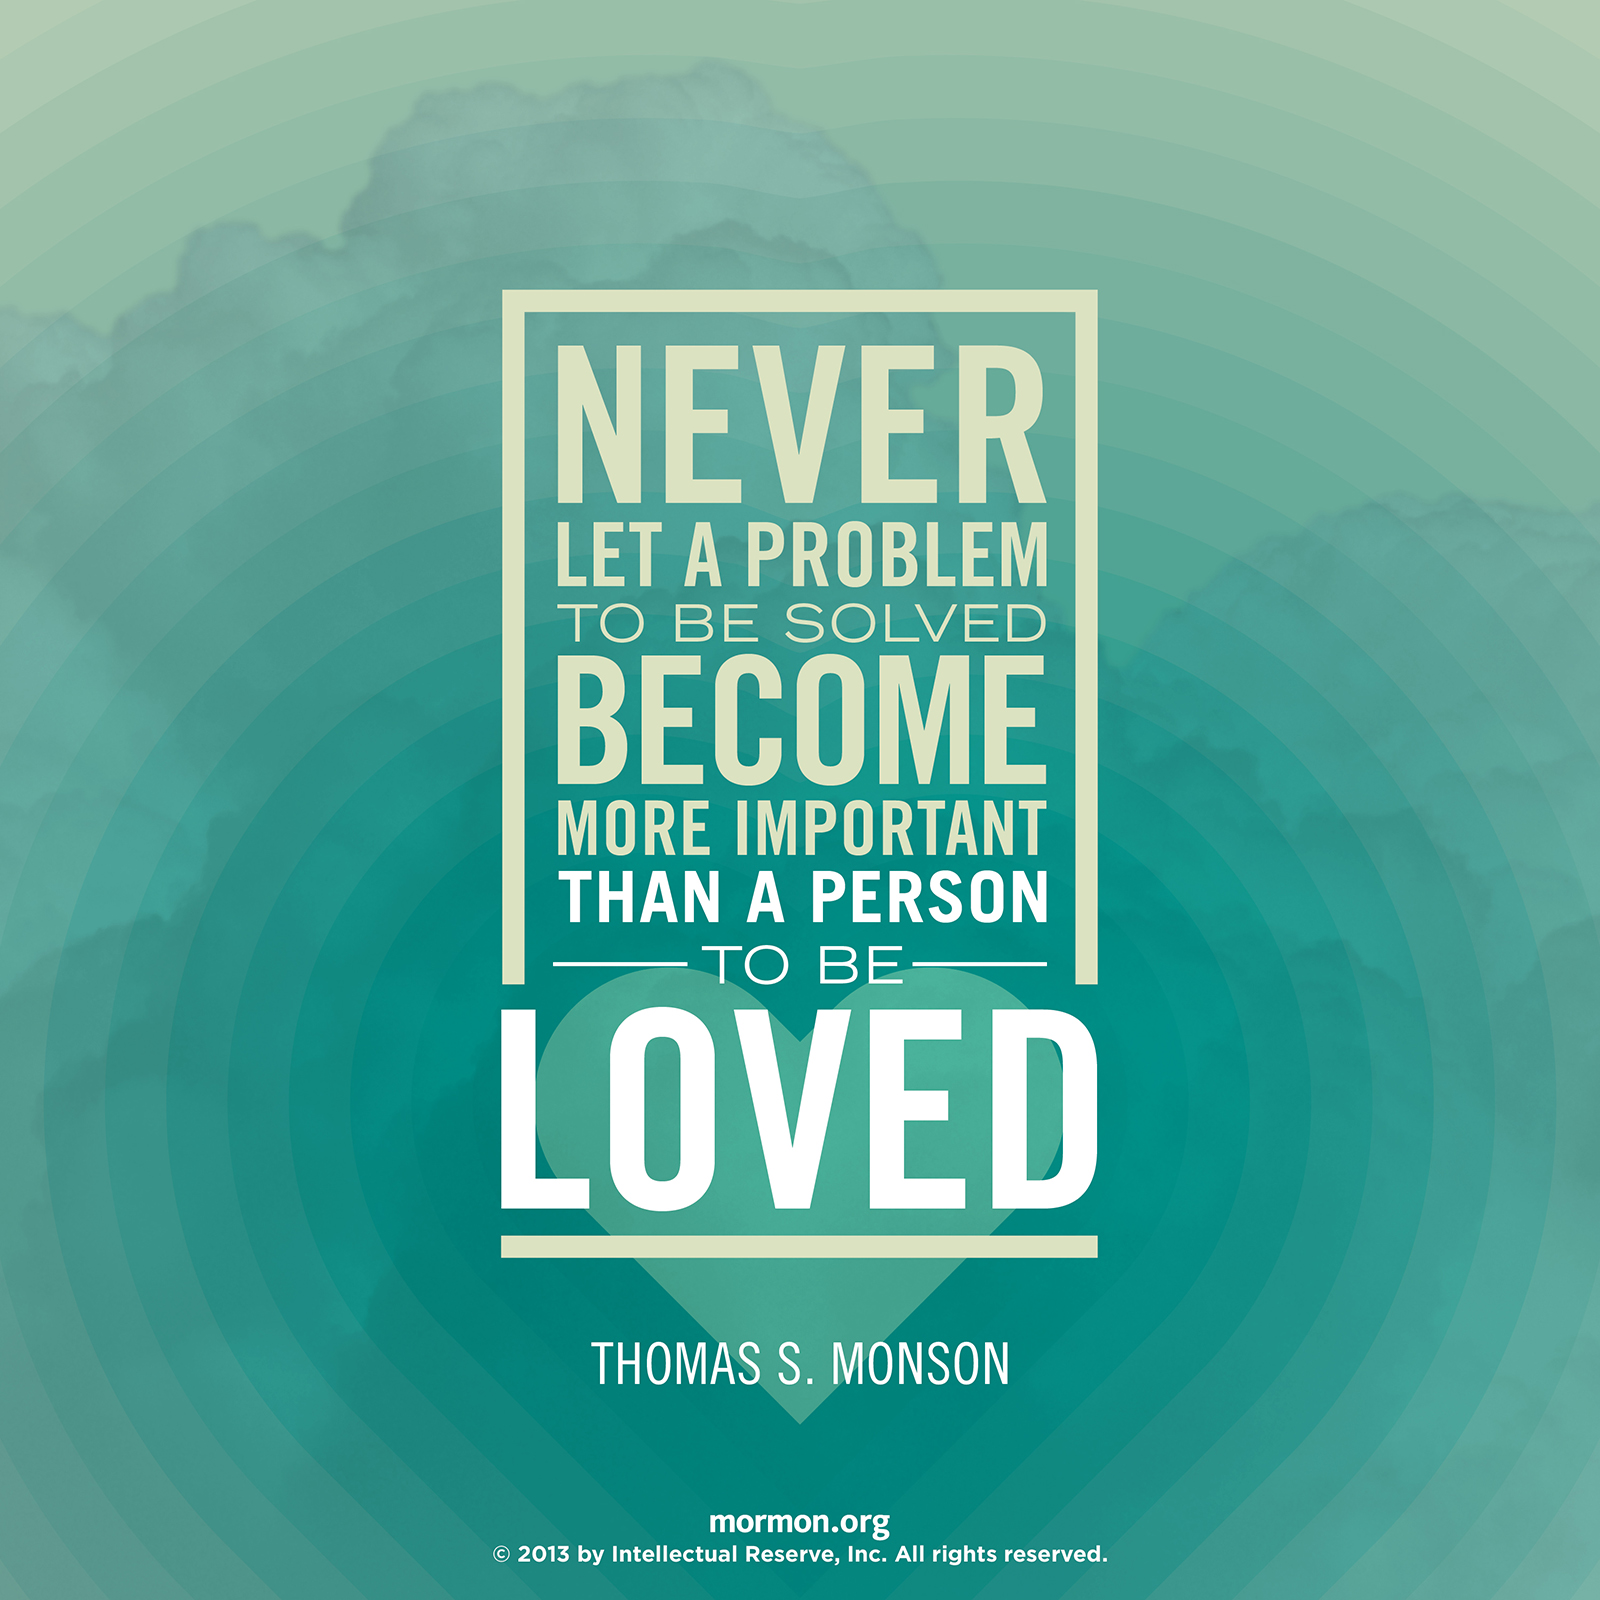 Thomas S Monson Quotes Problem to Be Solved Thomas S Monson Quotes